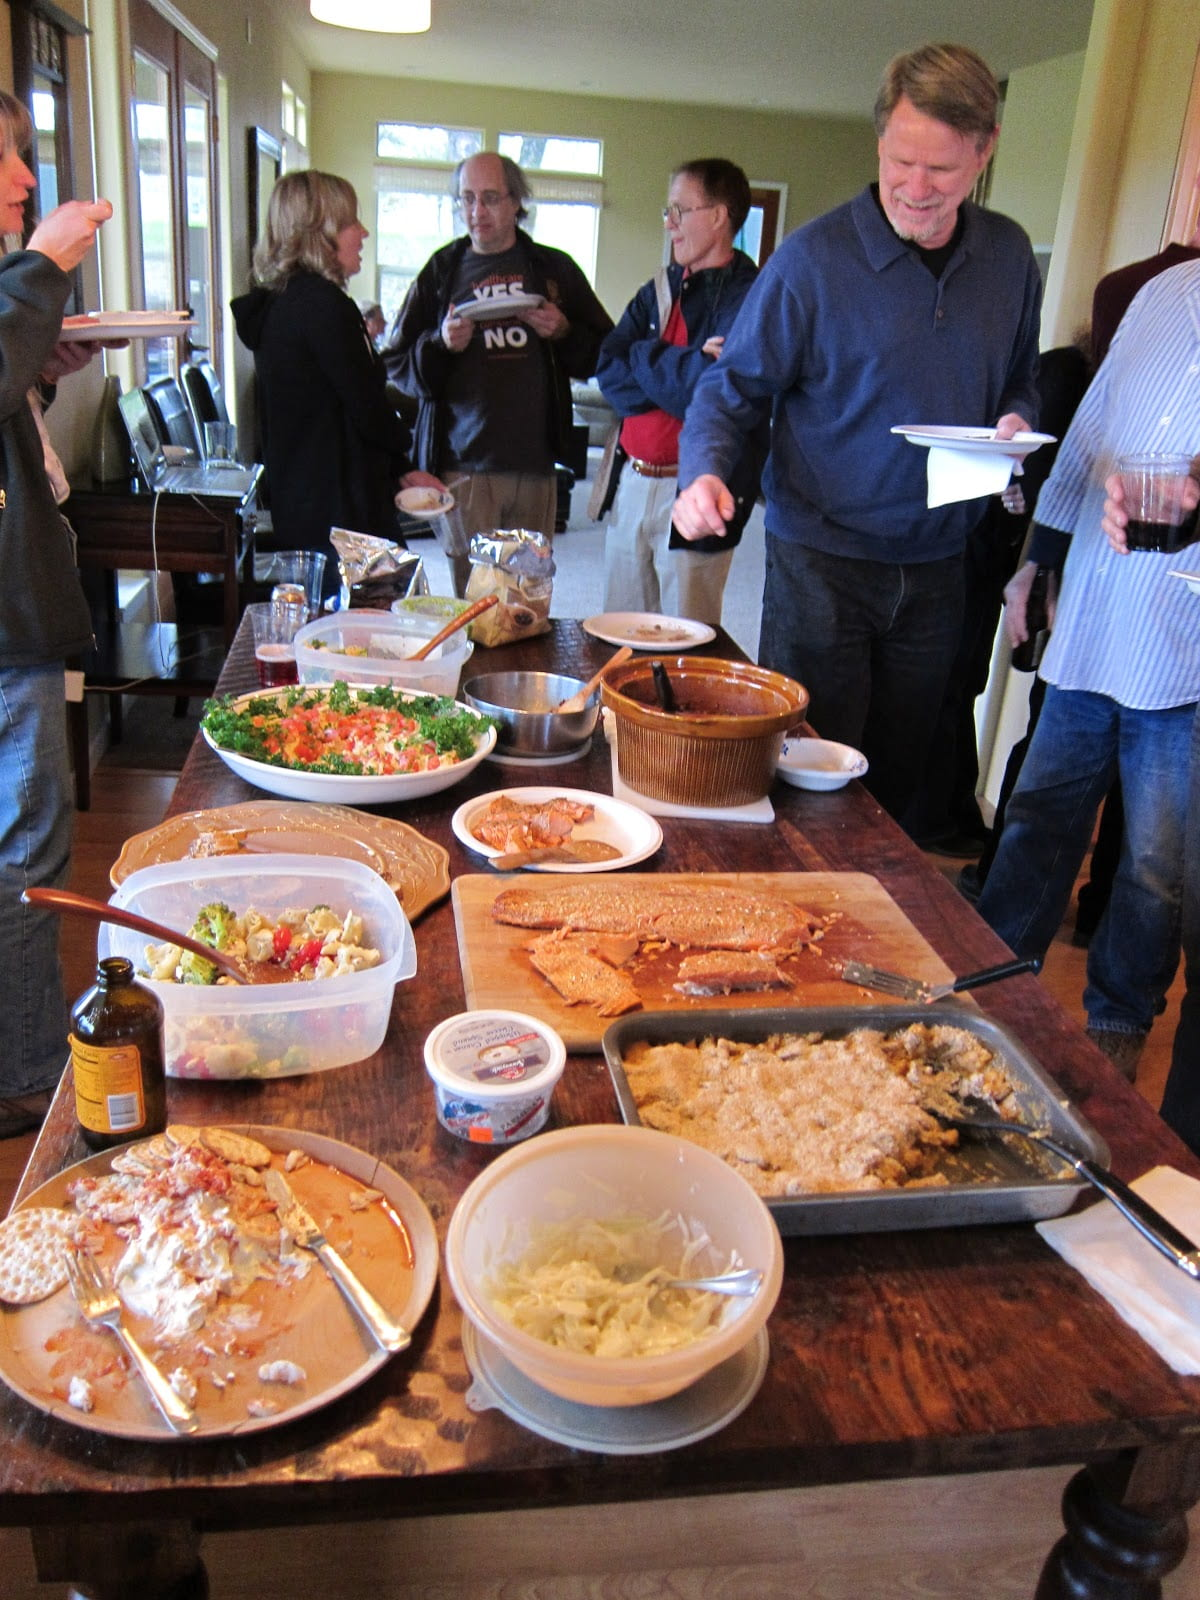 A group of people enjoying a potluck gathering.